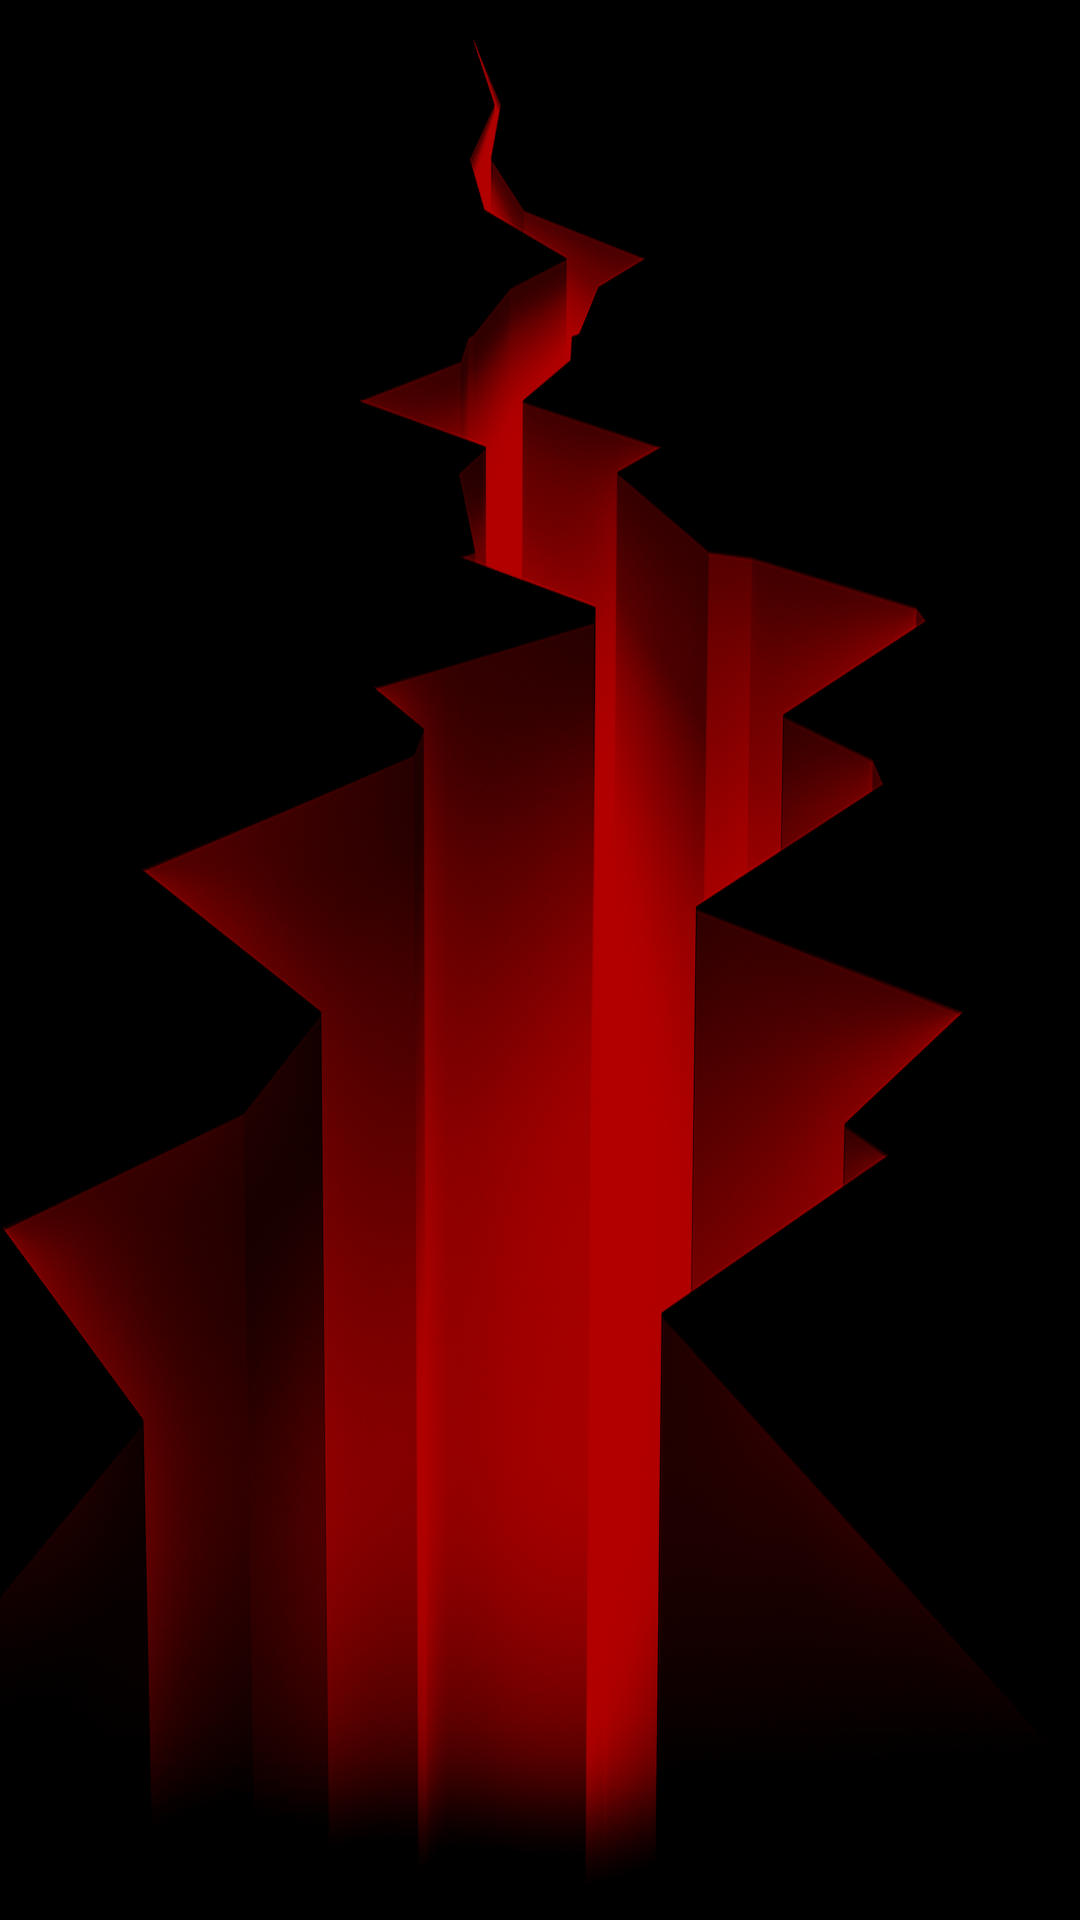 Minimalist HD Red Wallpapers - Wallpaper Cave